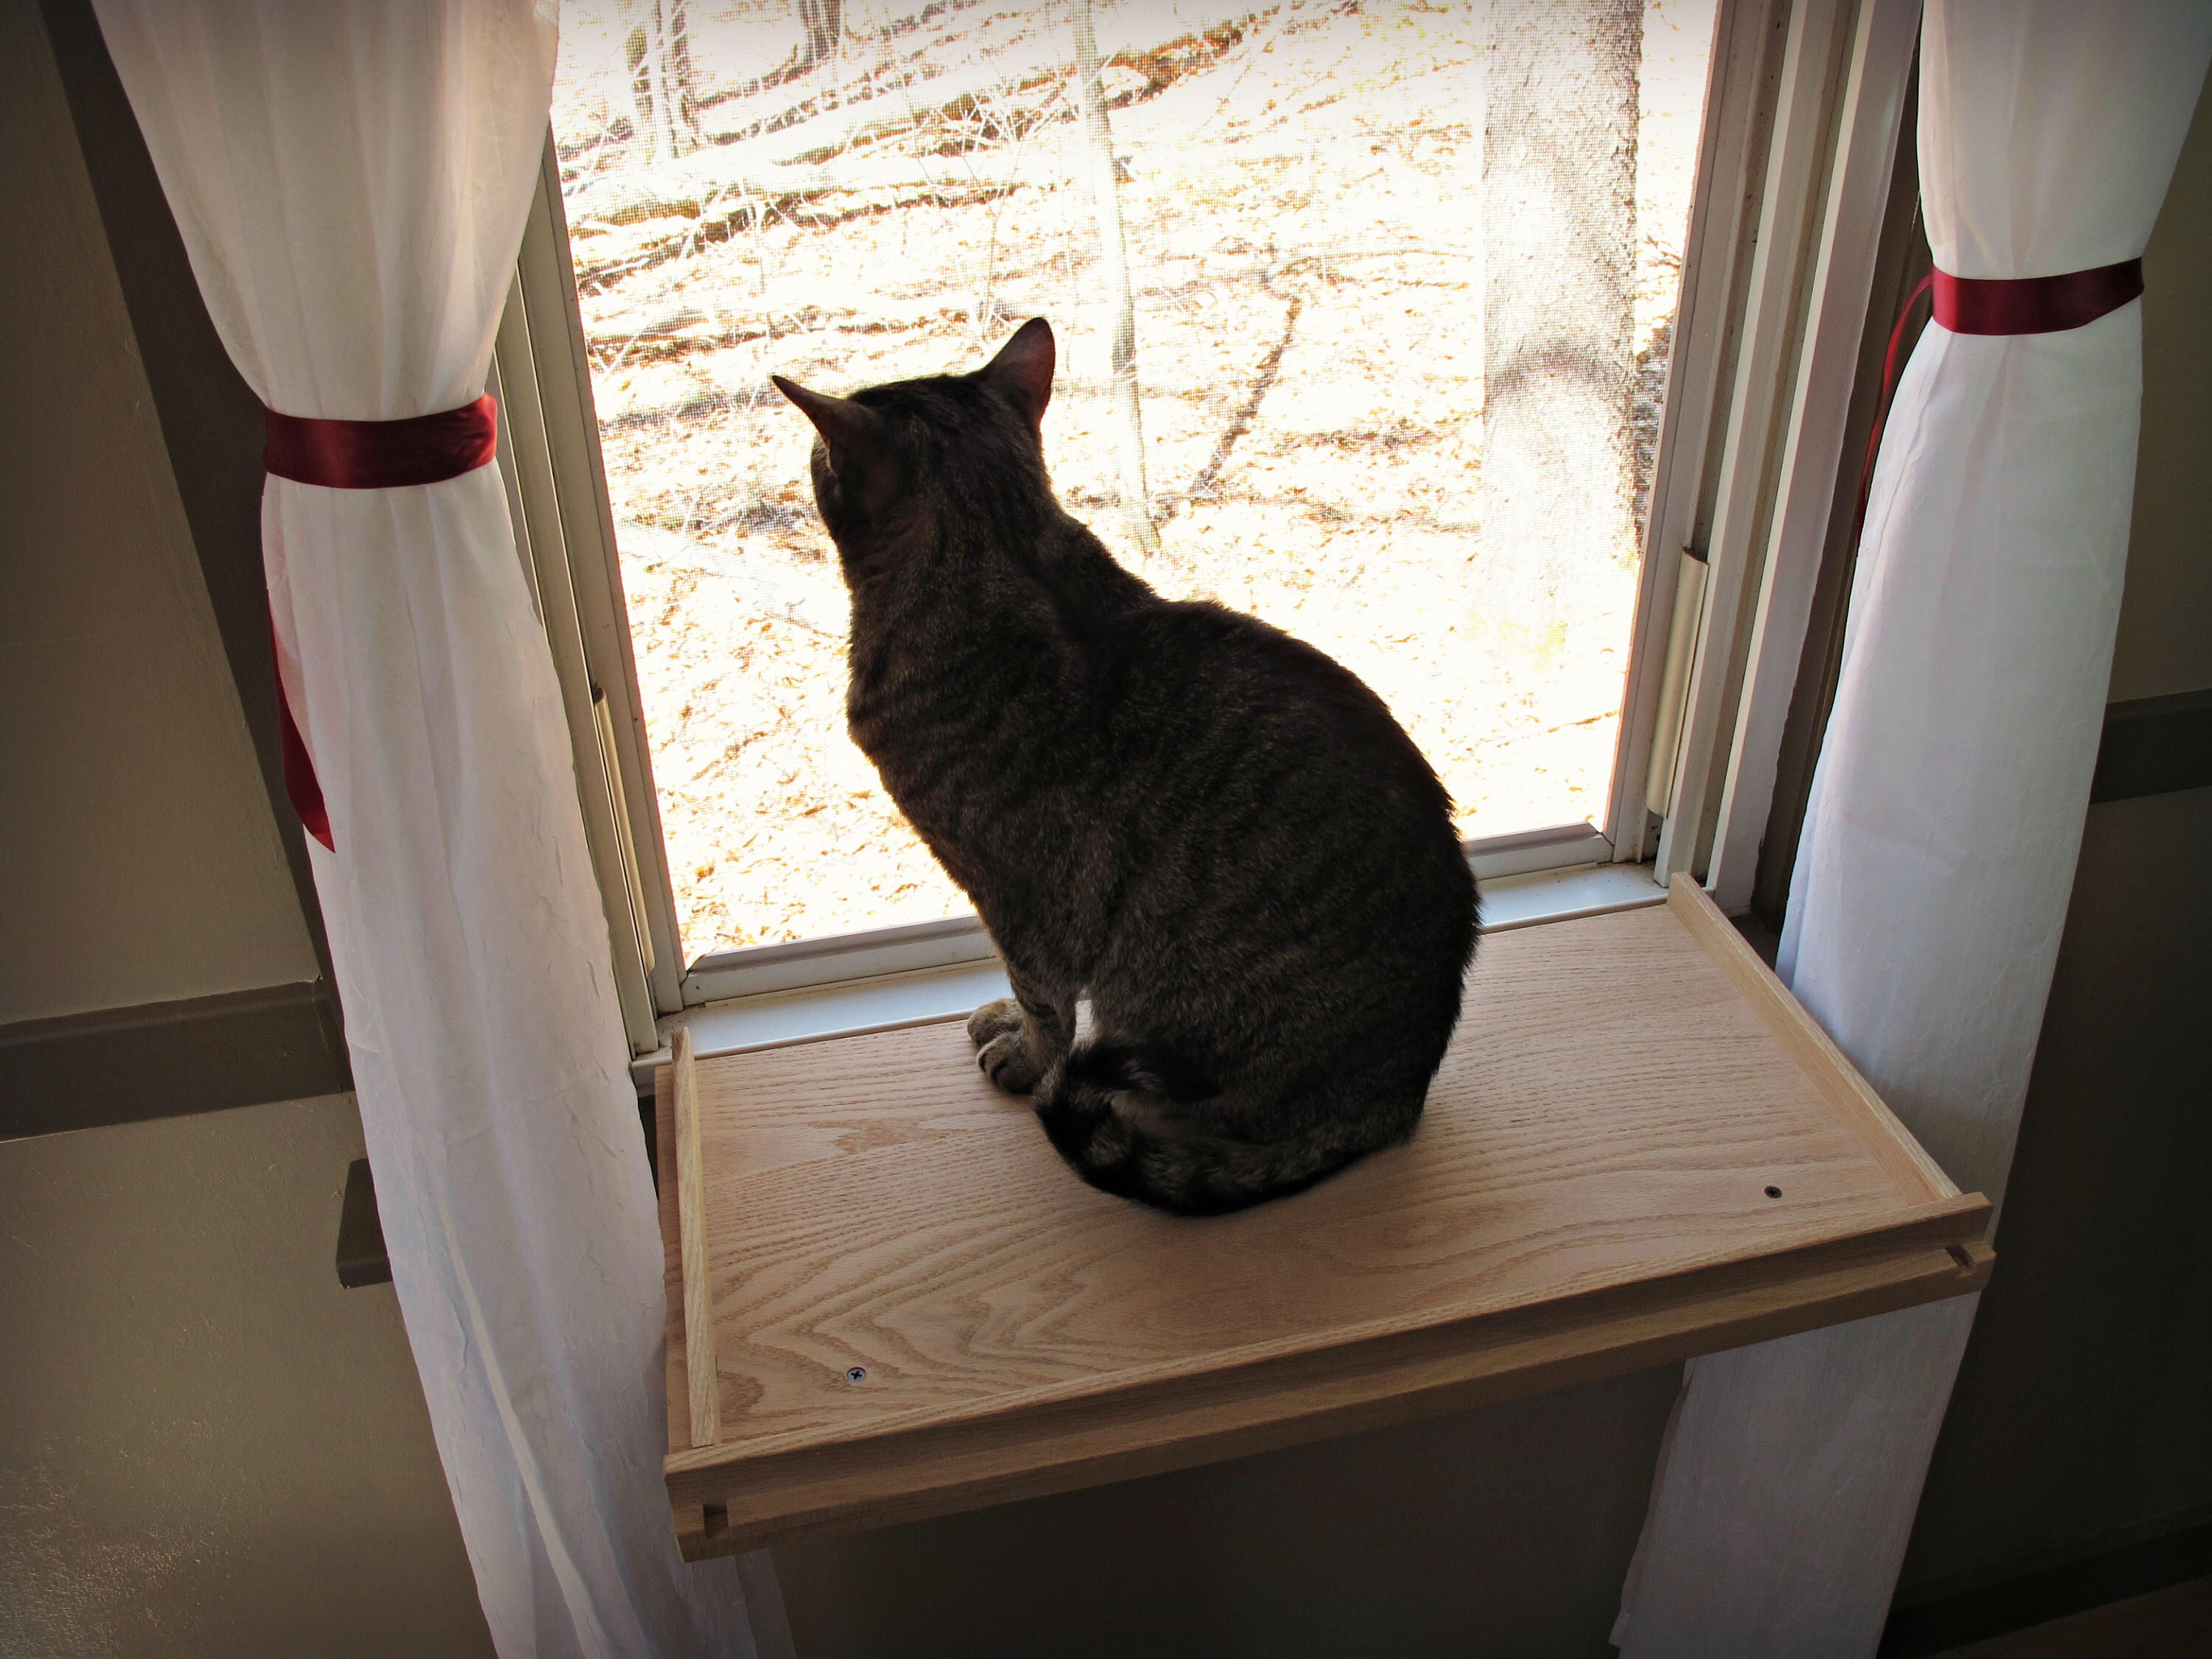 Cat Window Perch - Cat Shelf - Cat Bed by MountainPetProducts on Etsy https://www.etsy.com/listing/514362506/cat-window-perch-cat-shelf-cat-bed